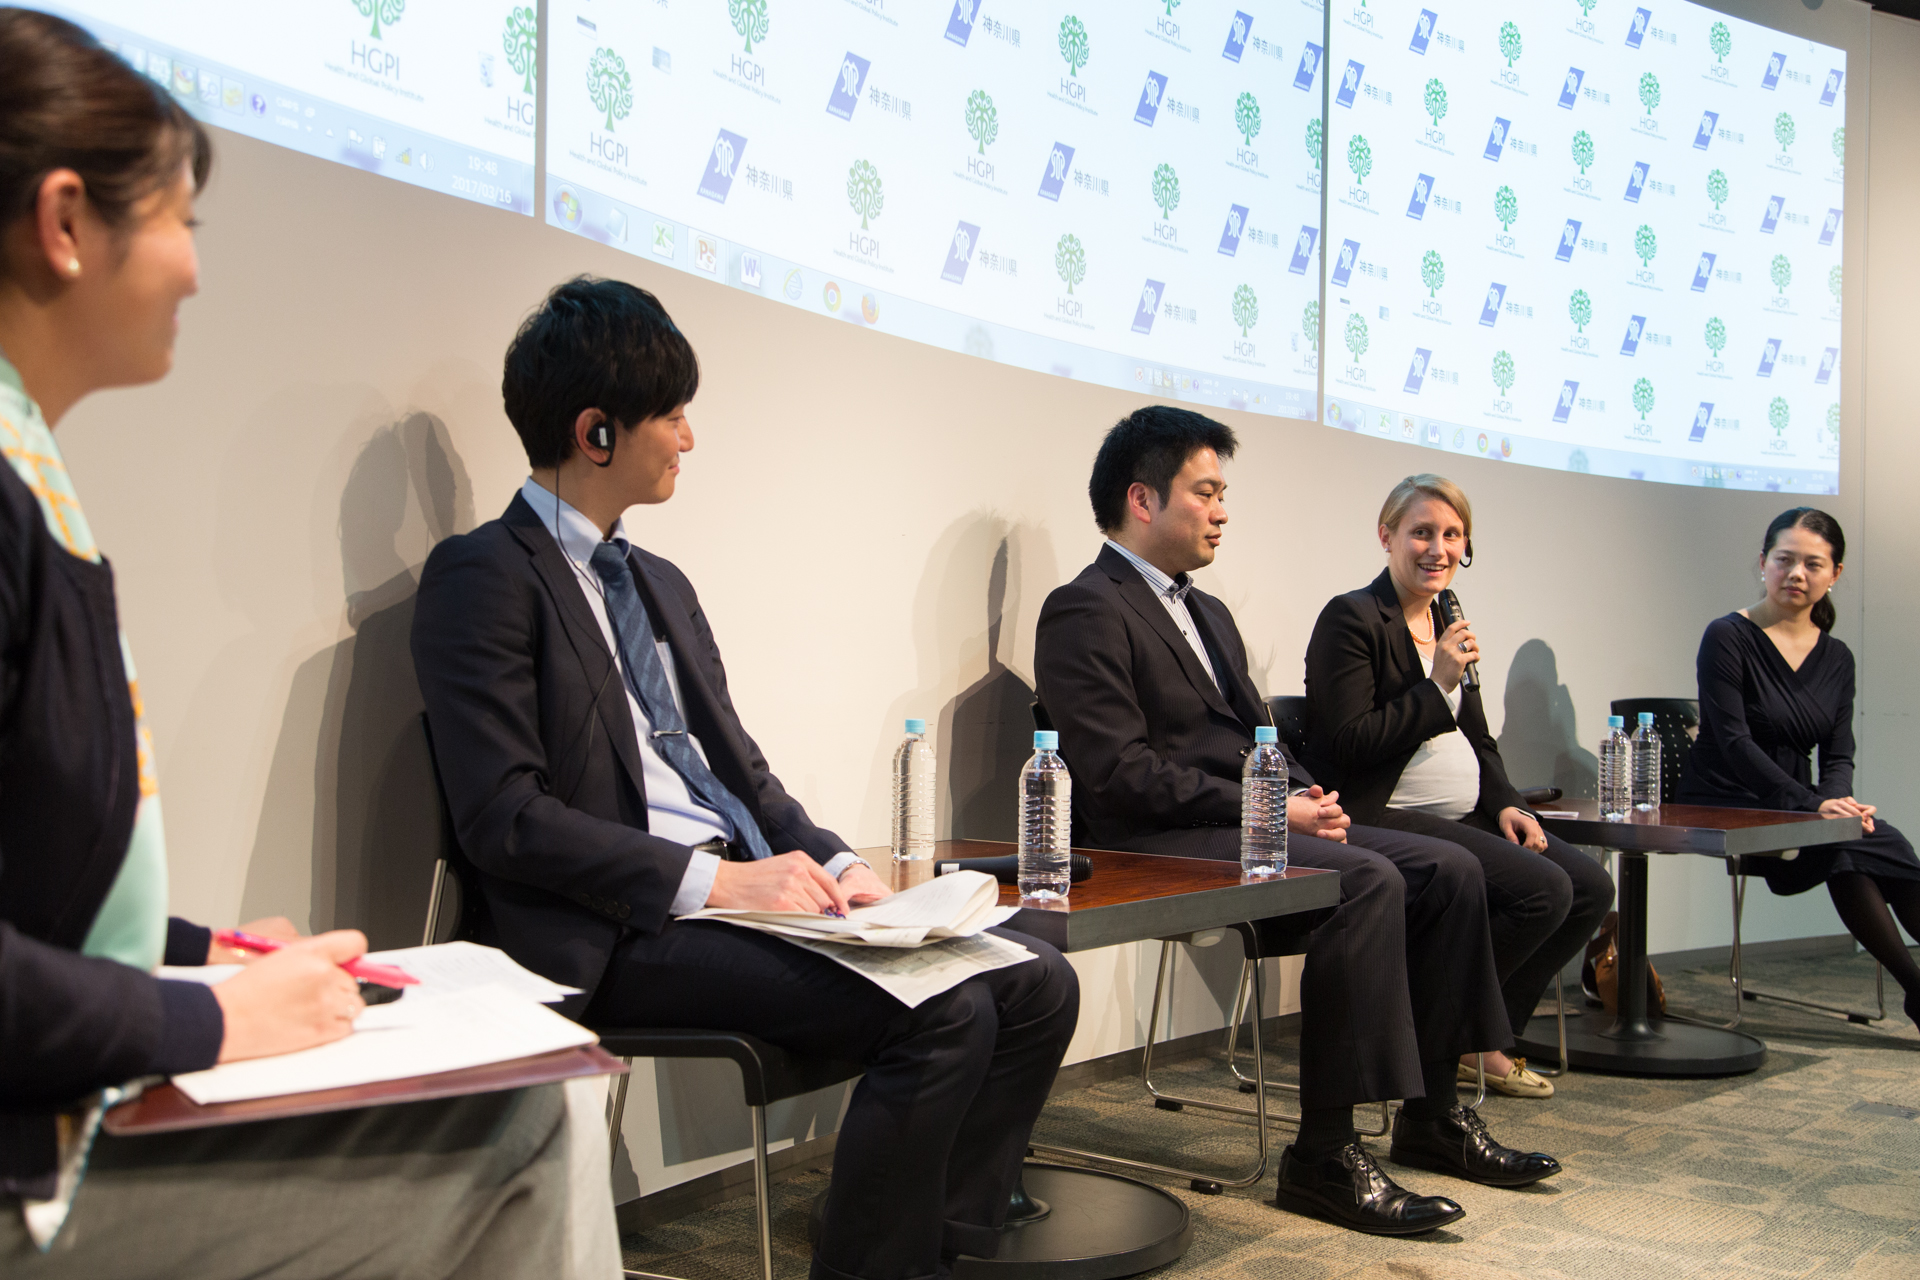 (Event Report) Kanagawa Medical Innovation School: Evening Seminar - Global Health Experts to Lead Health Innovations - (March 16, 2017)